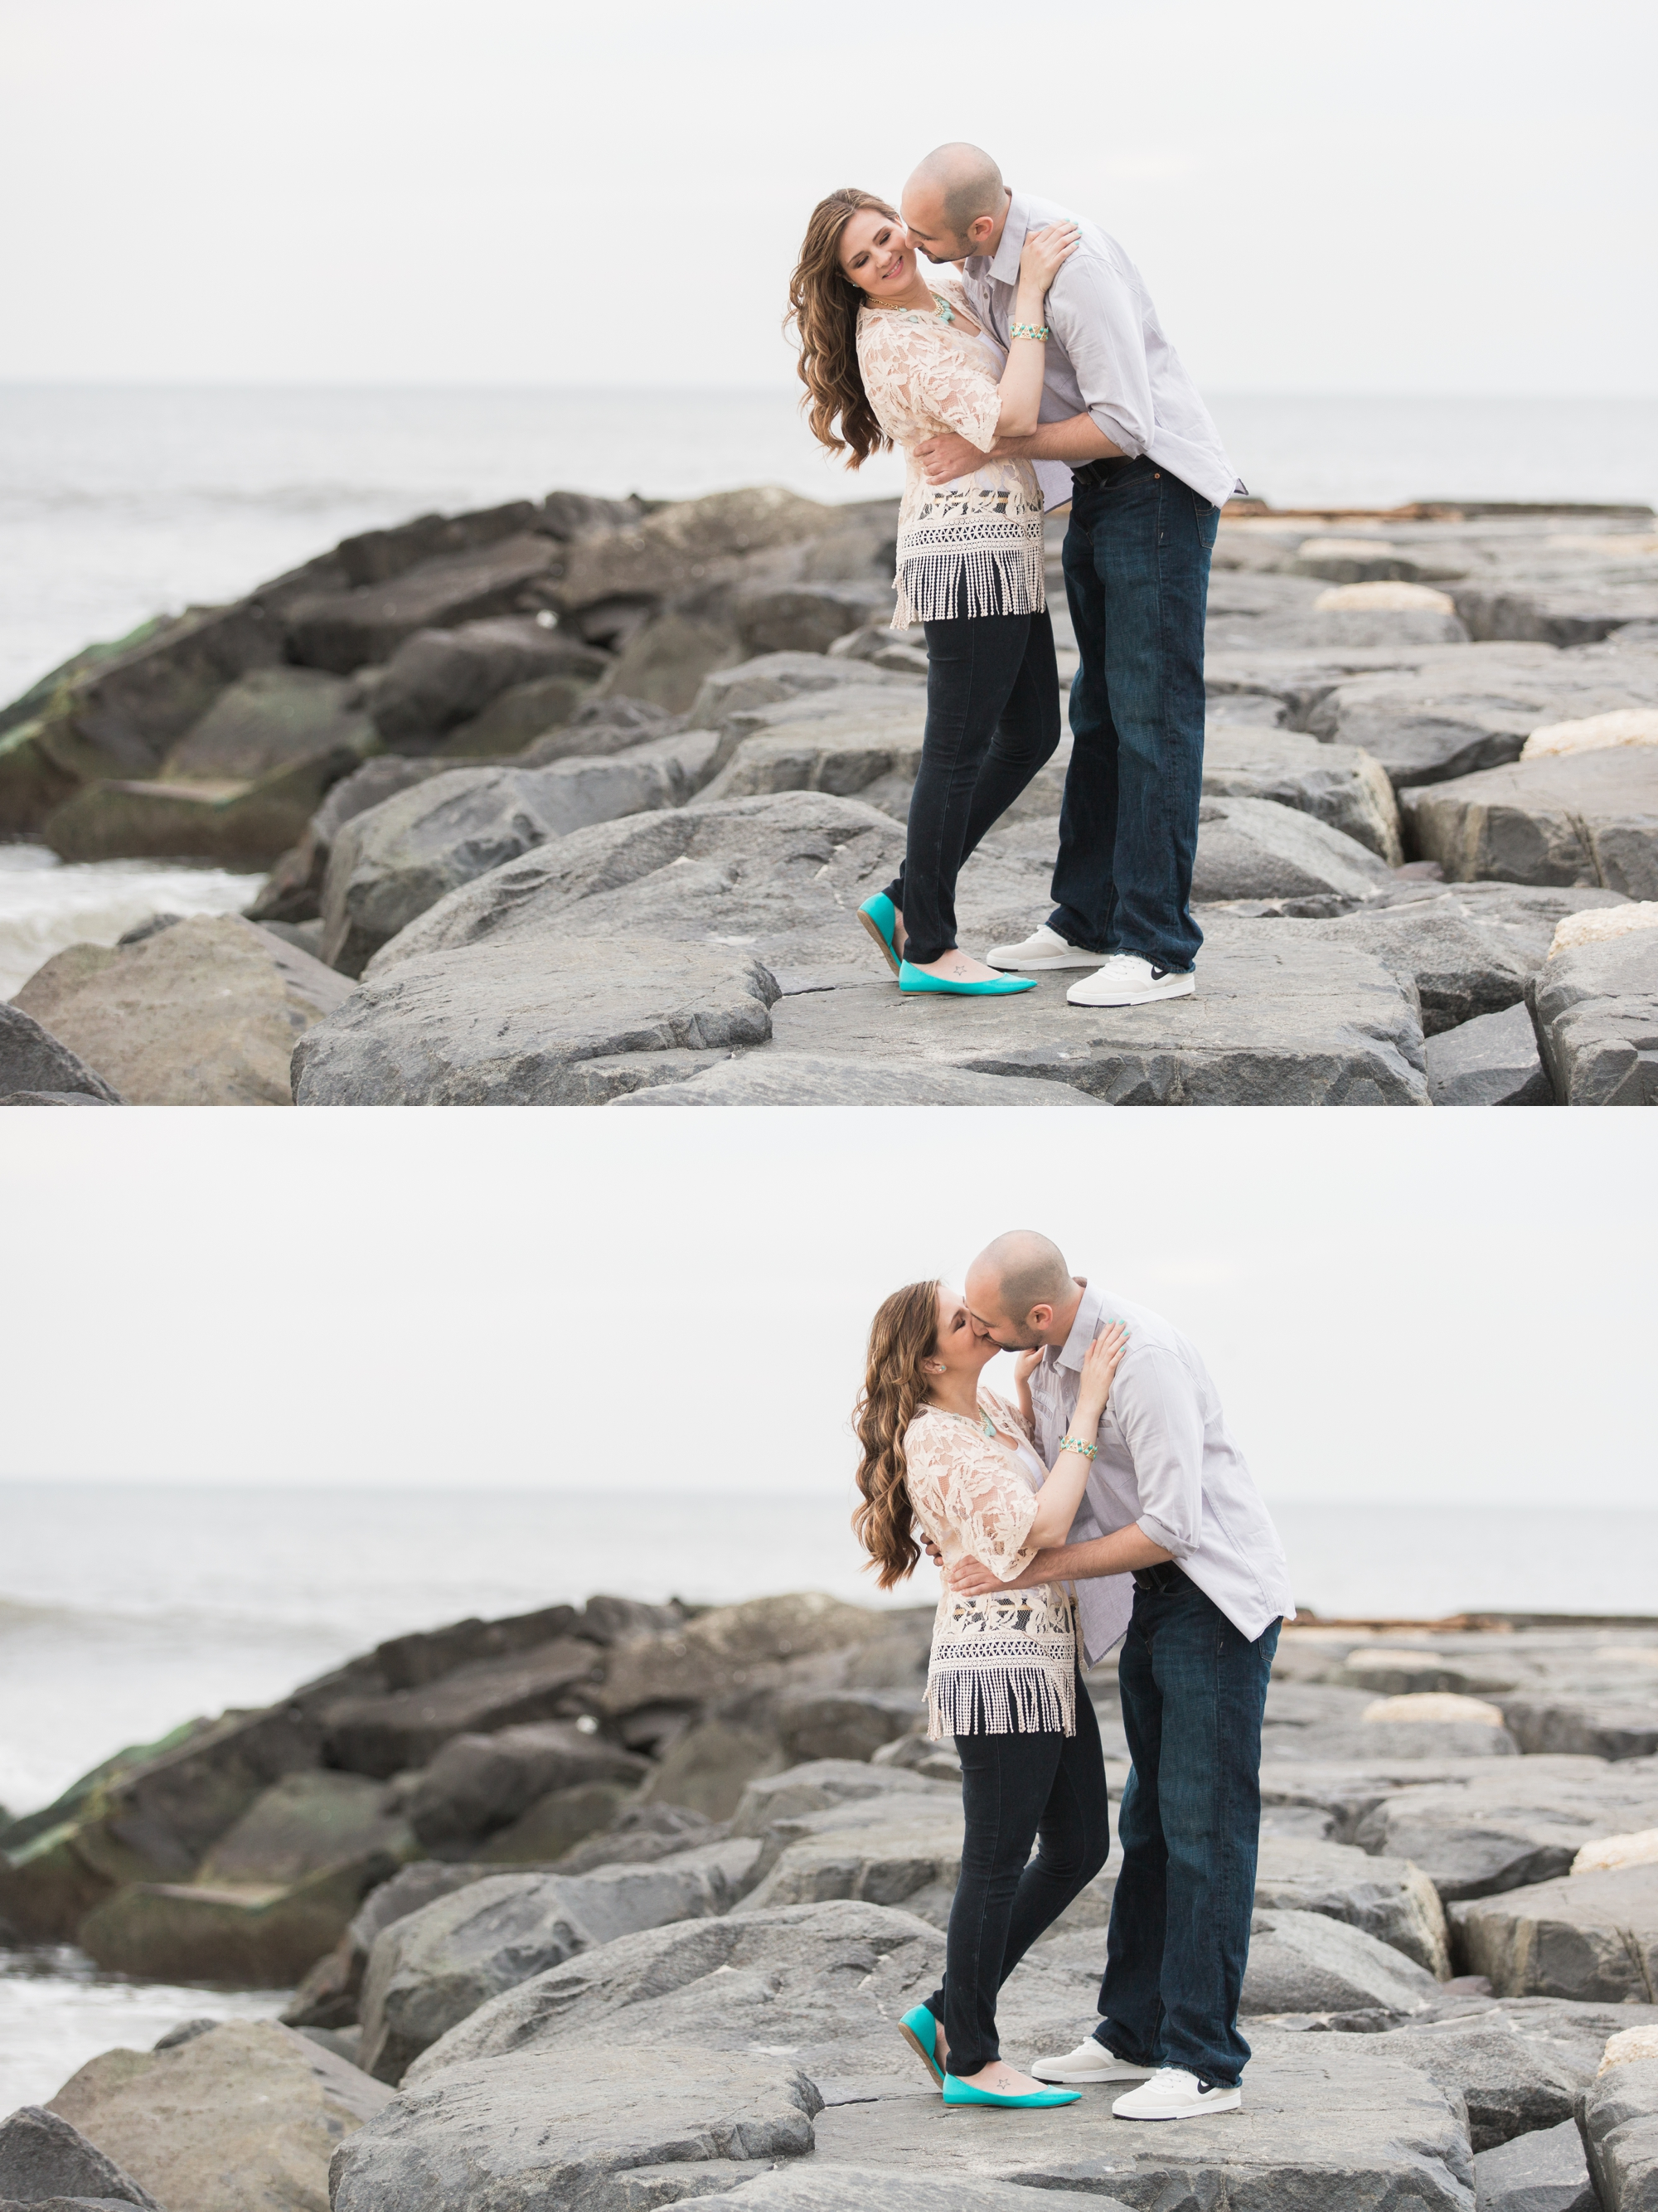 Leia + Taylor Engagement Photography in Asbury Park, NJ